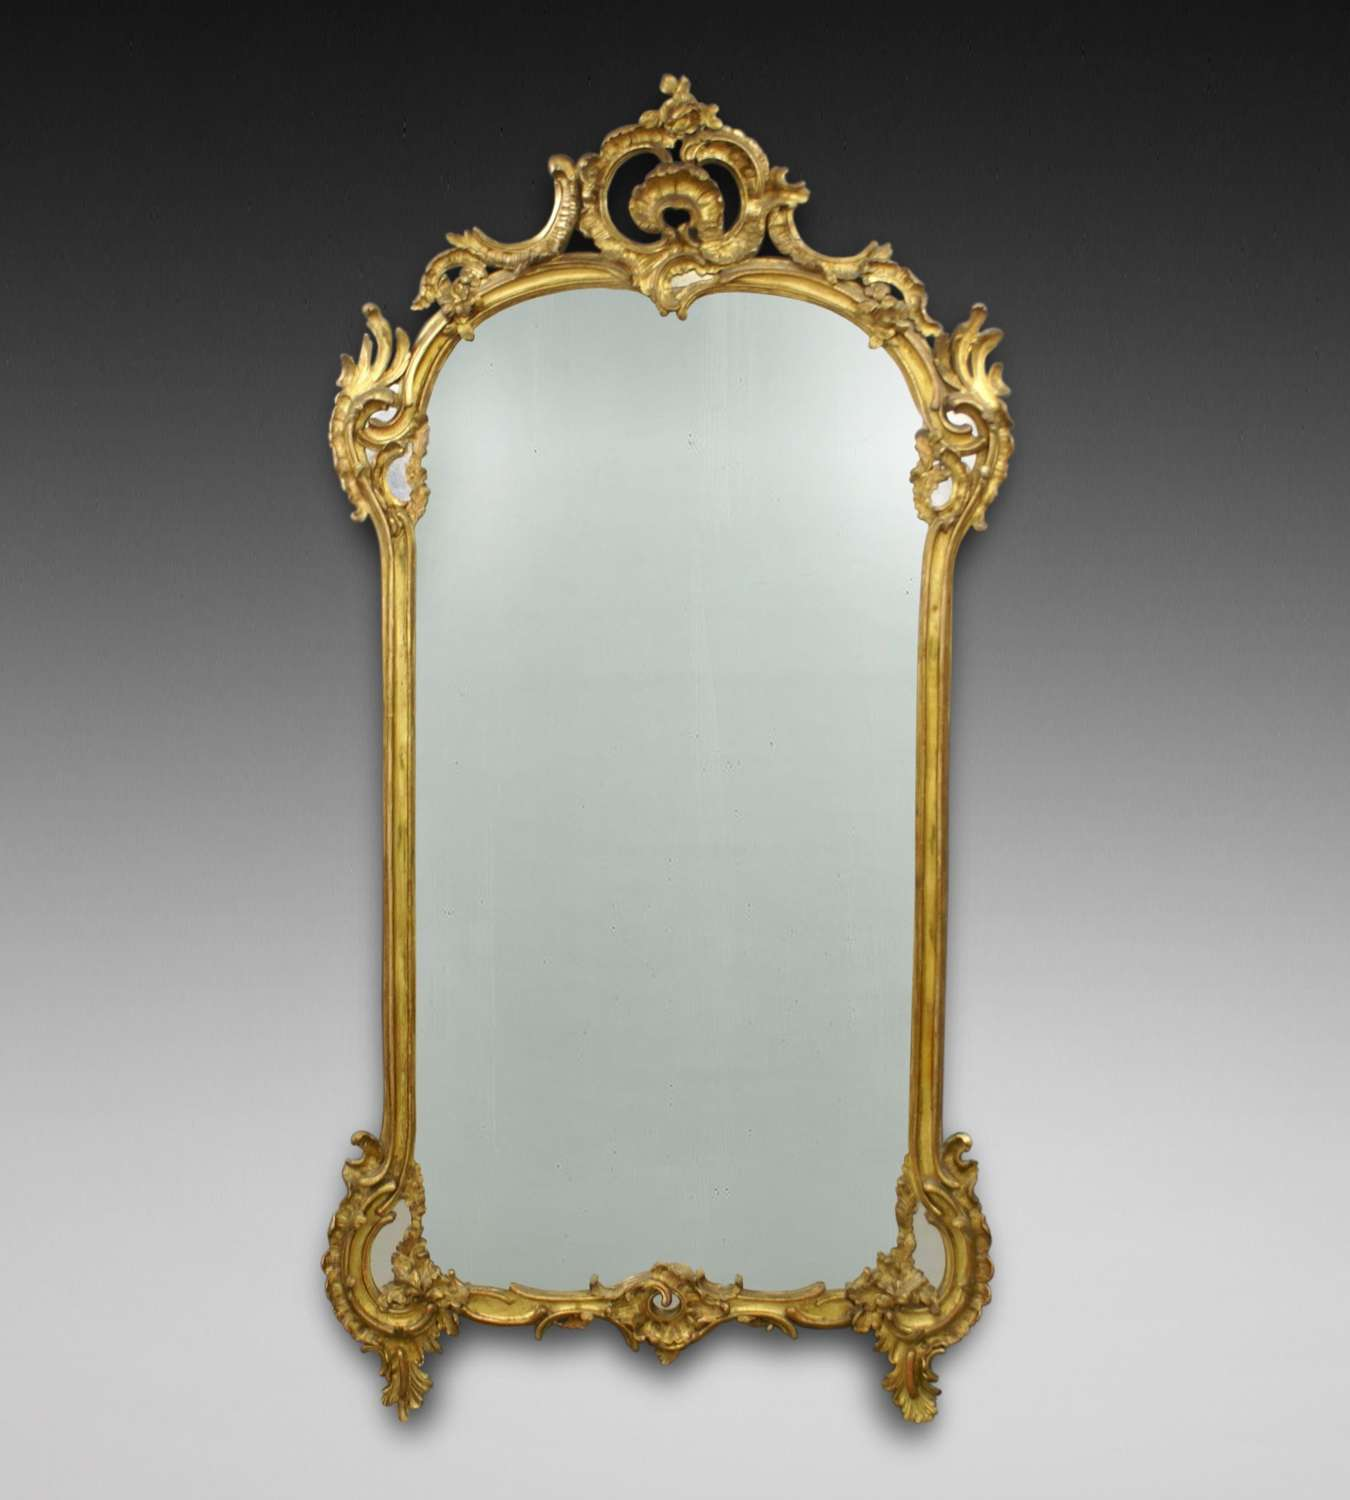 A large and impresive  carved giltwood19th Century wall mirror